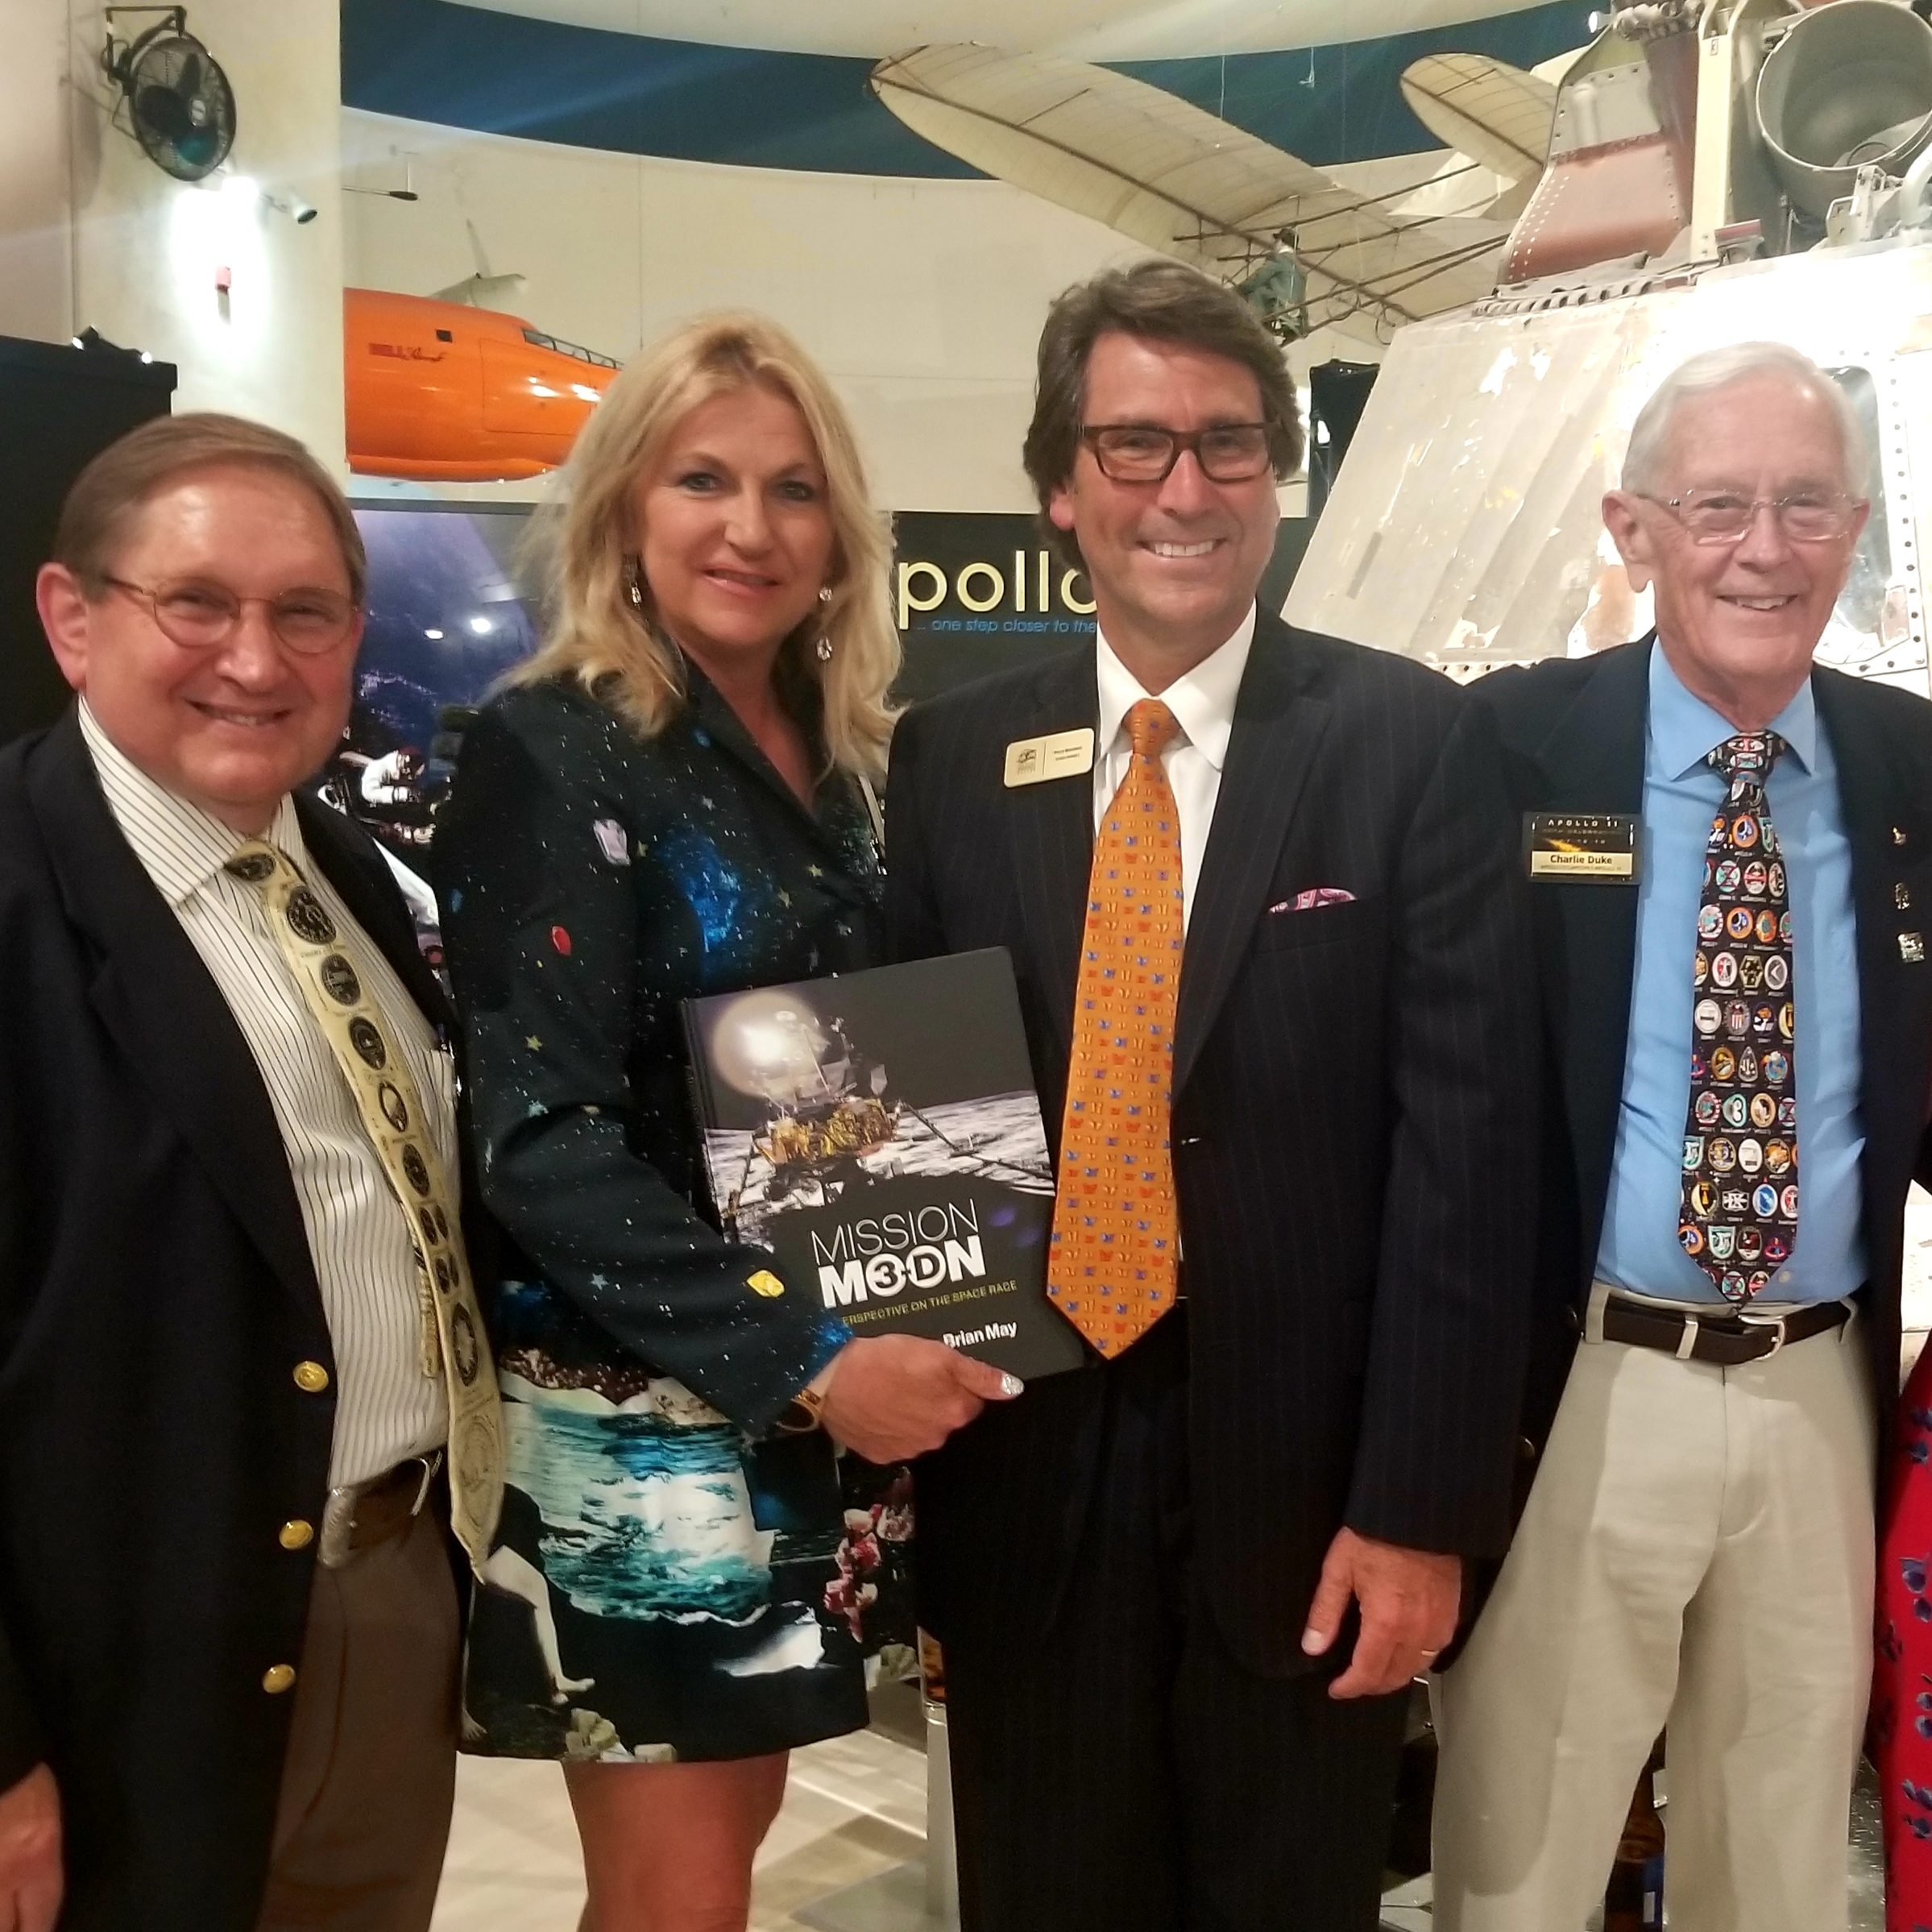 Dr. Perry and Judith Mansfield with Apollo 11, Charlie Duke, and CEO James Kidrick.